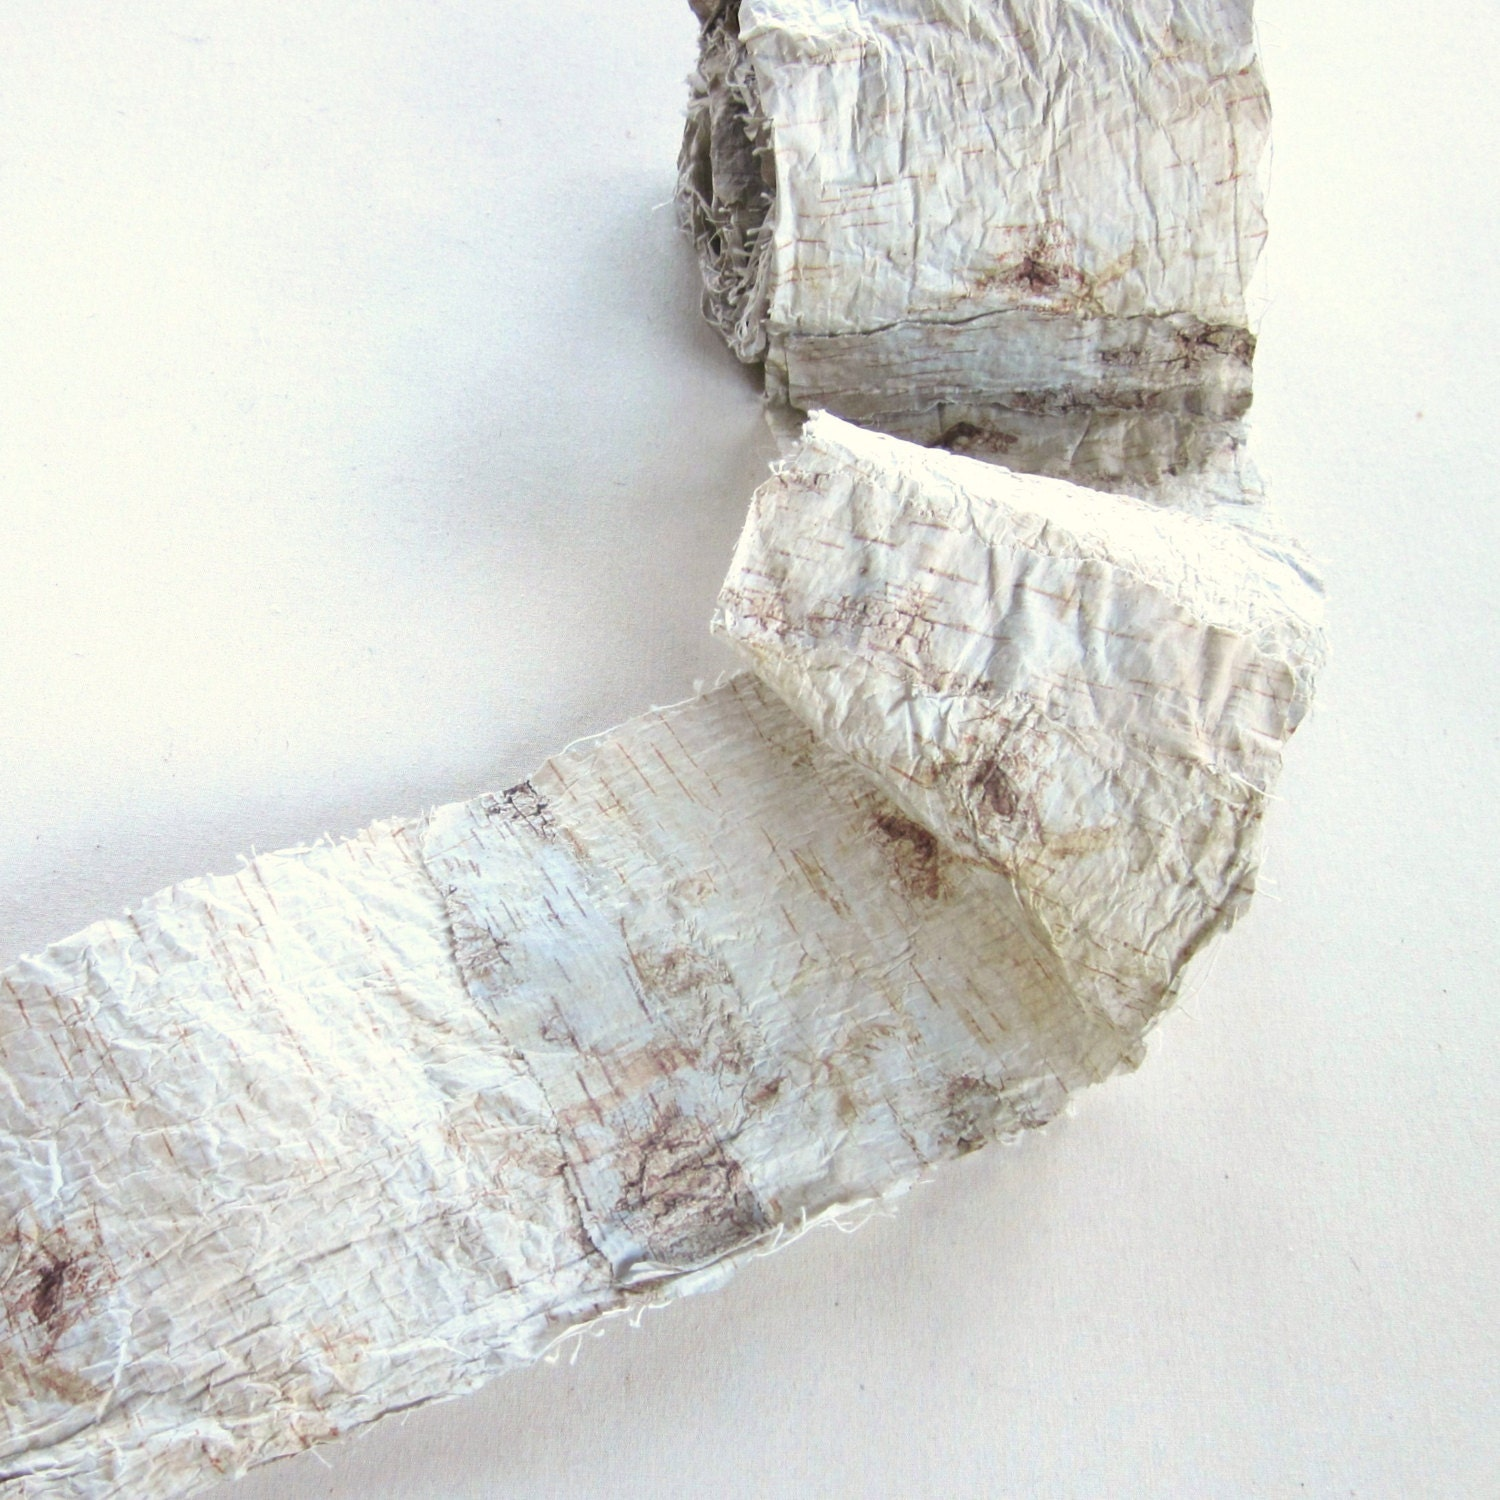 Birch Bark Ribbon Garland for Decorating Weddings and Crafts - GardenBarn